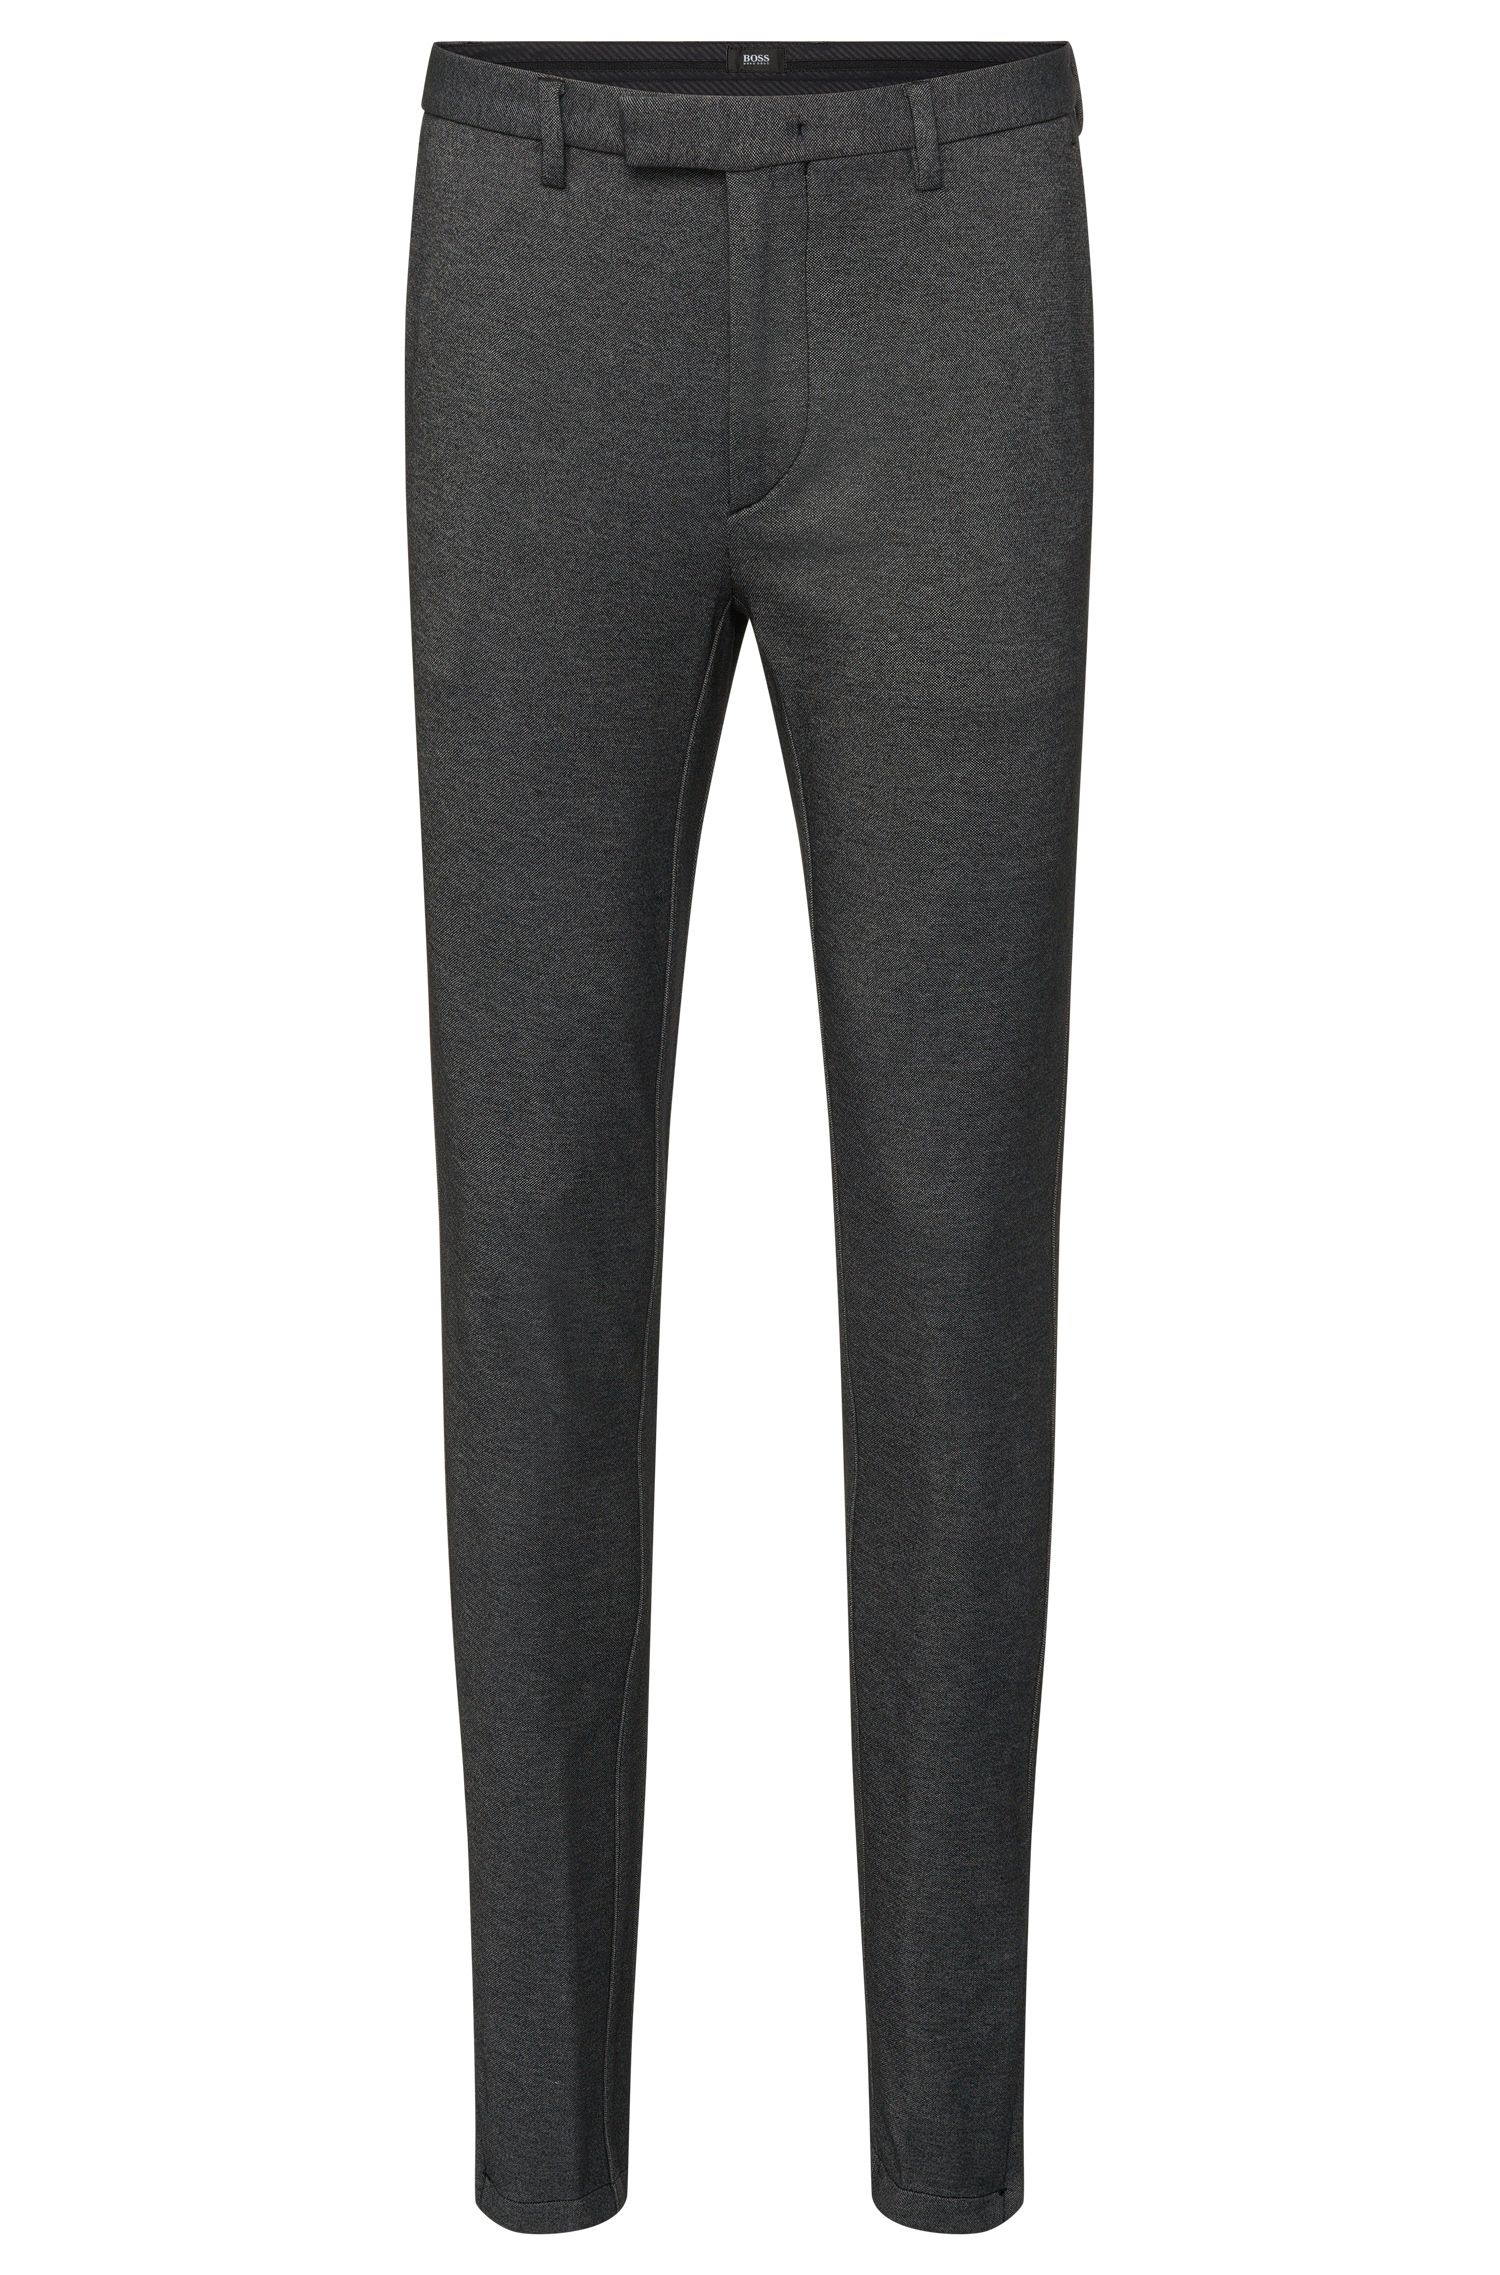 Mottled slim-fit trousers in cotton blend with zip details: 'Kaito3-6-W'